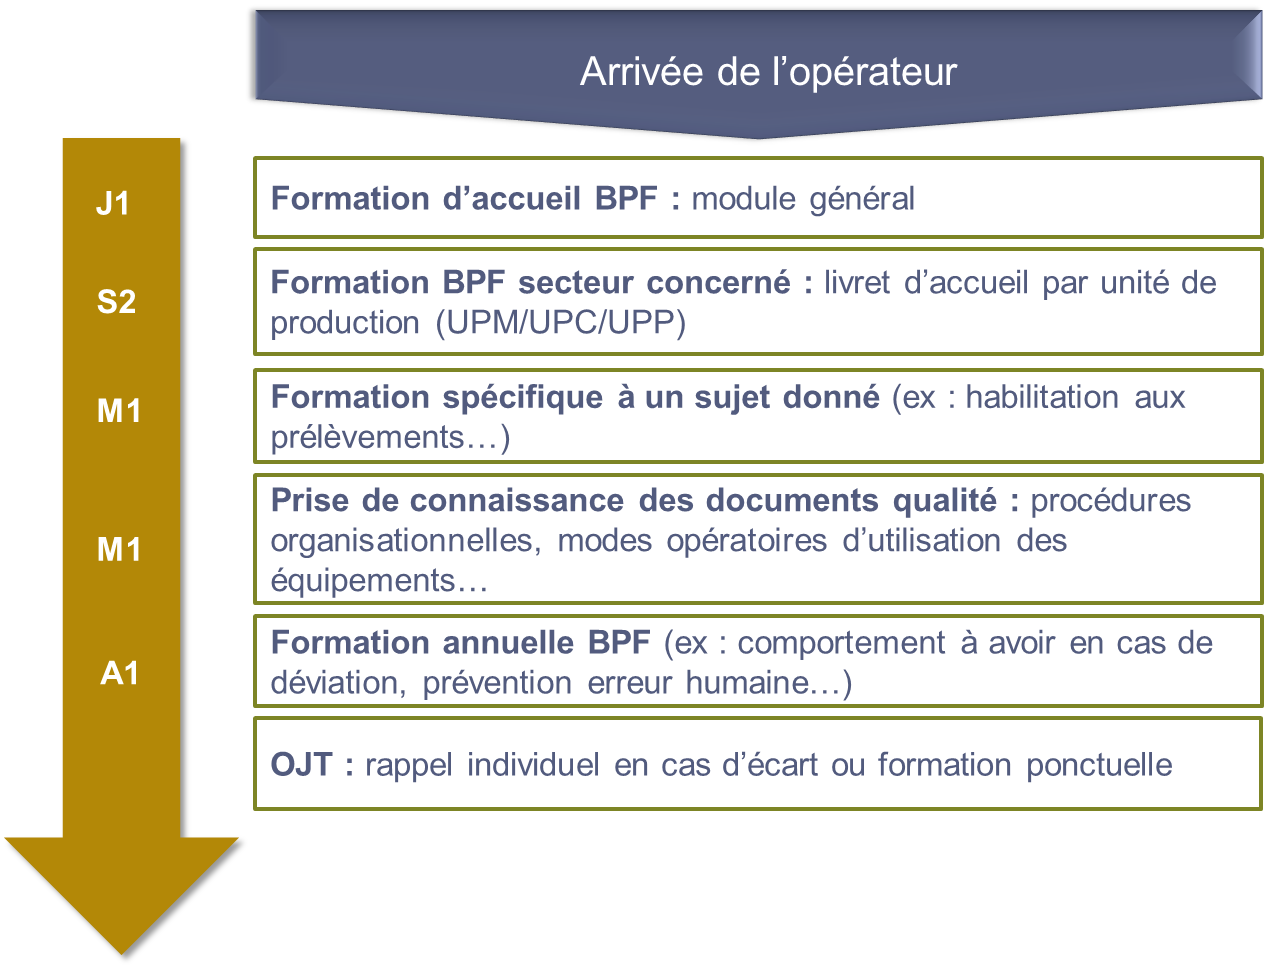 questionnaires d u0026 39  u00e9valuation des formations qualit u00e9 - op u00e9rateurs de production